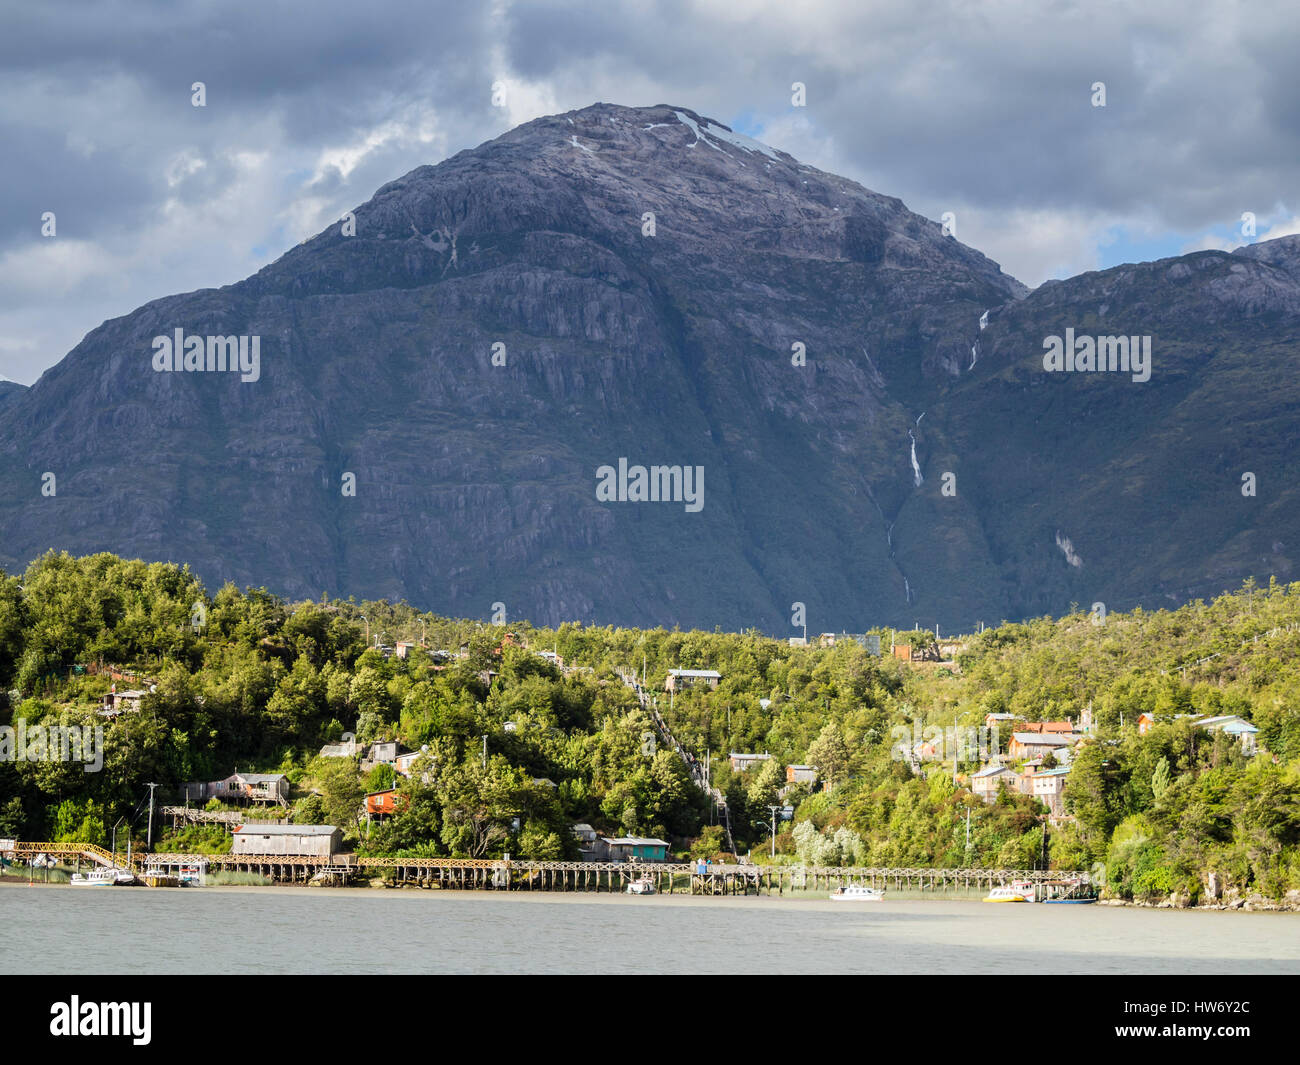 View over bay of Caleta Tortel against mountain range, houses and wooden boardwalk, Caleta Tortel,  Aysen region, - Stock Image